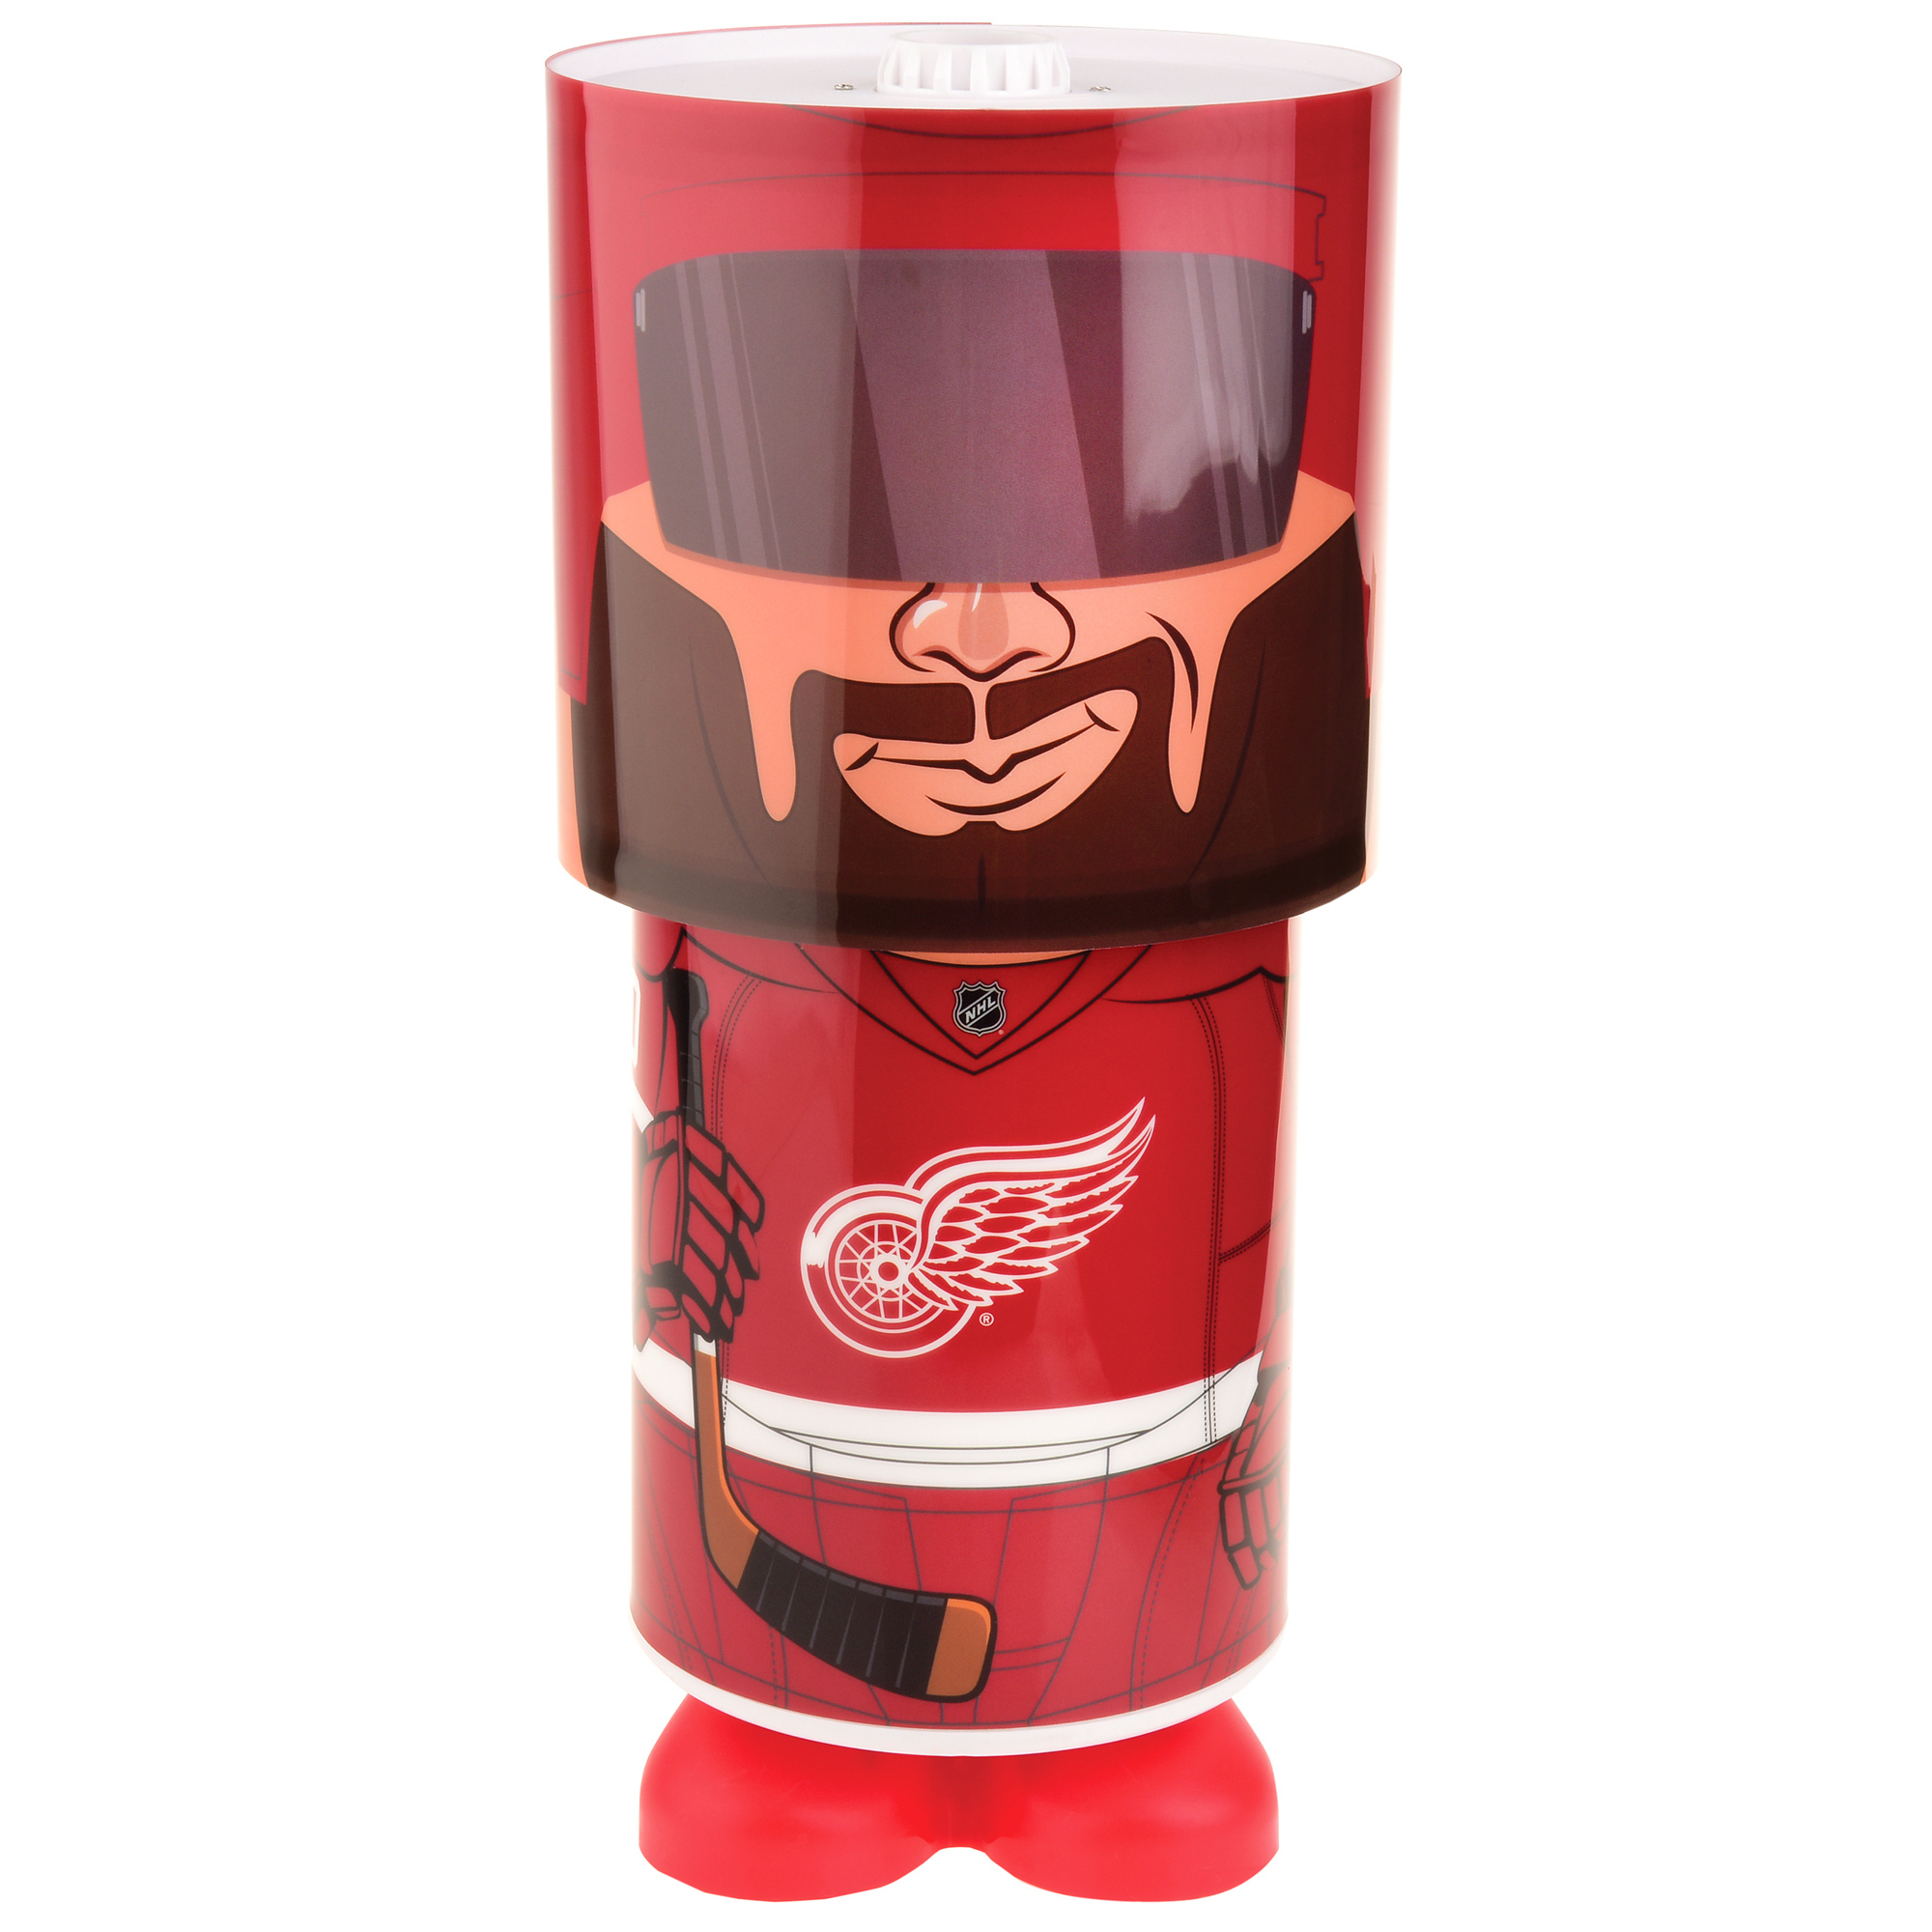 Detroit Red Wings Rotating Desk Lamp - No Size